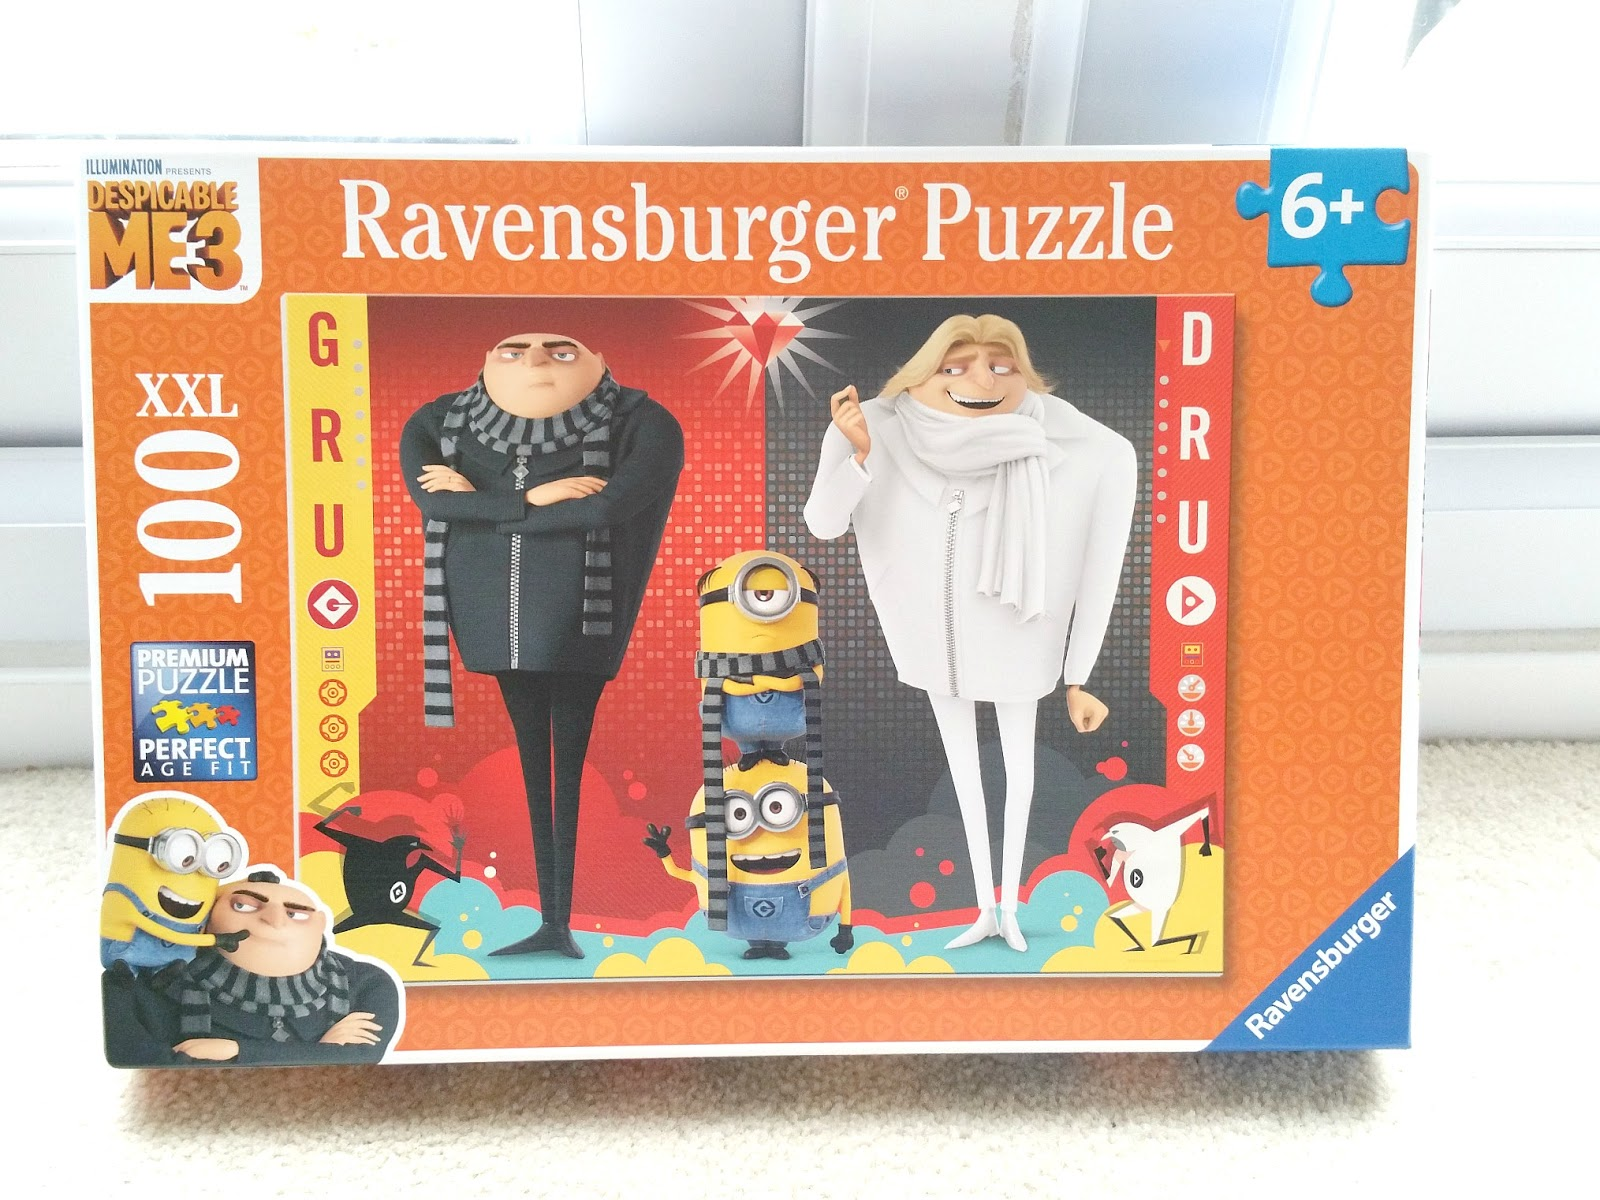 Despicable Me 3, Ravensburger puzzle for kids, Minion puzzle